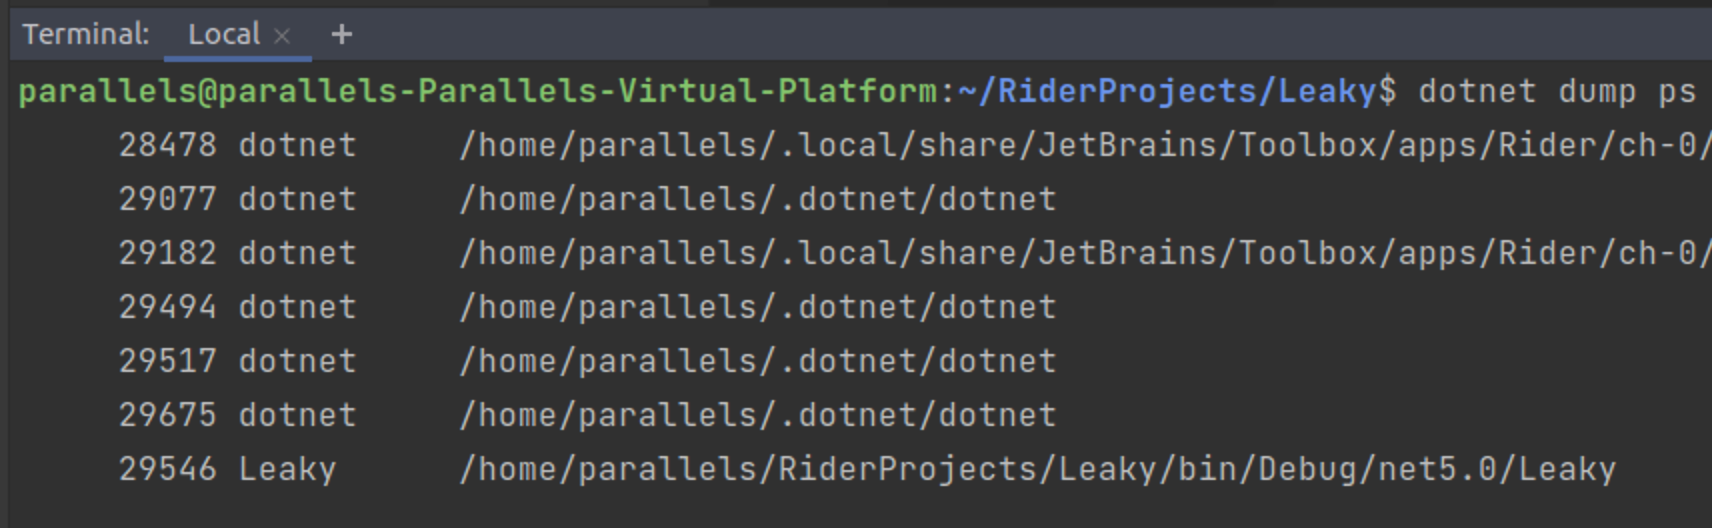 The results of the dotnet dump ps command in Rider's terminal window.